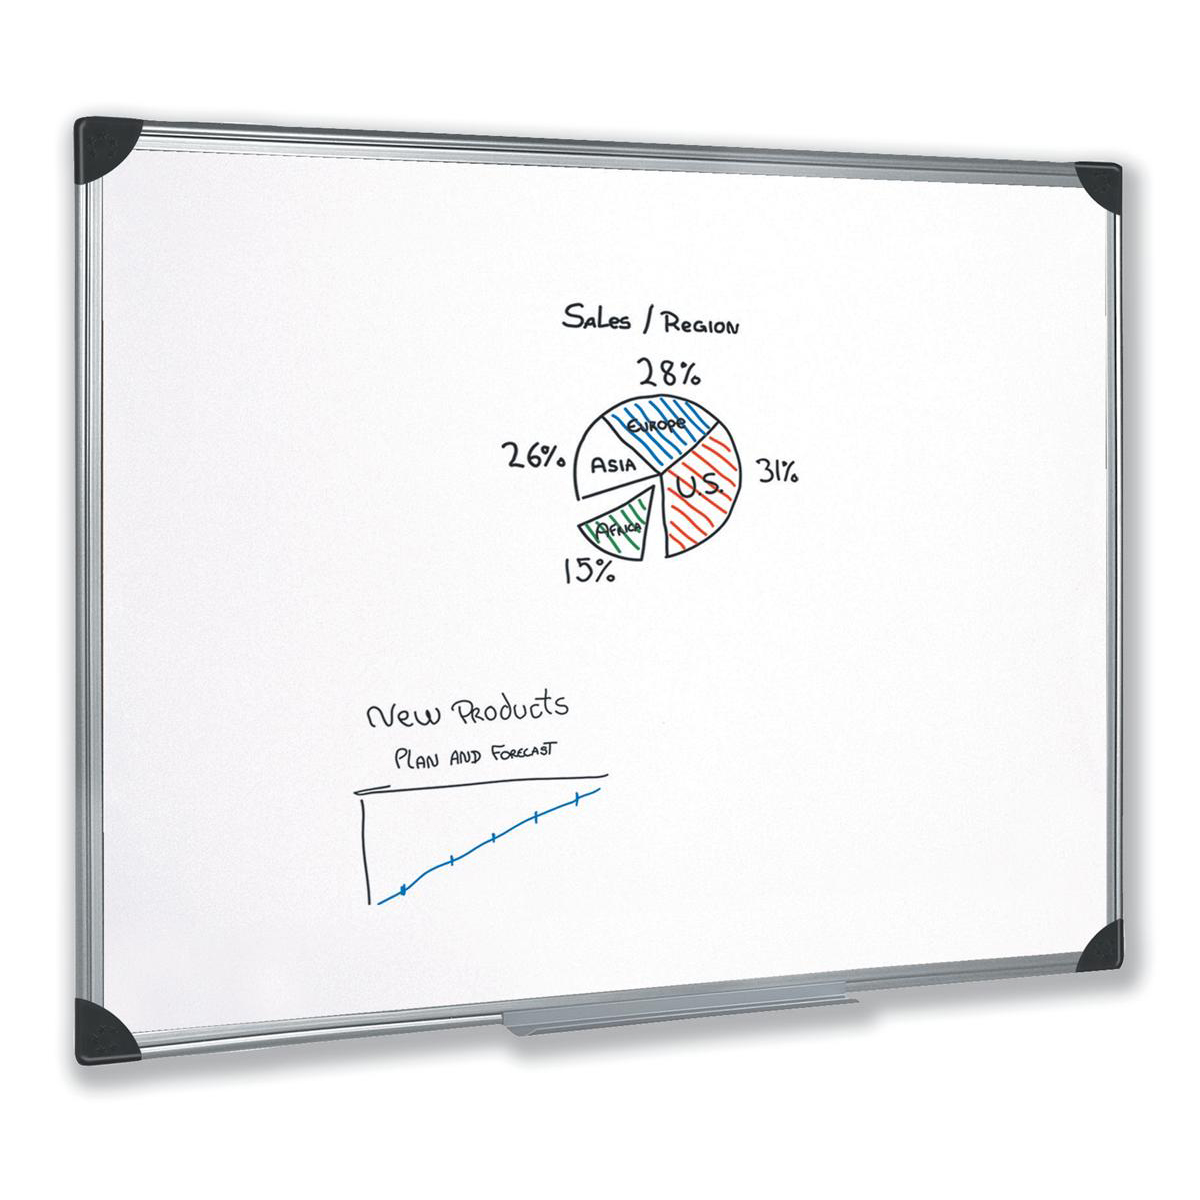 Magnetic 5 Star Office Whiteboard Drywipe Magnetic with Pen Tray and Aluminium Trim W1200xH900mm